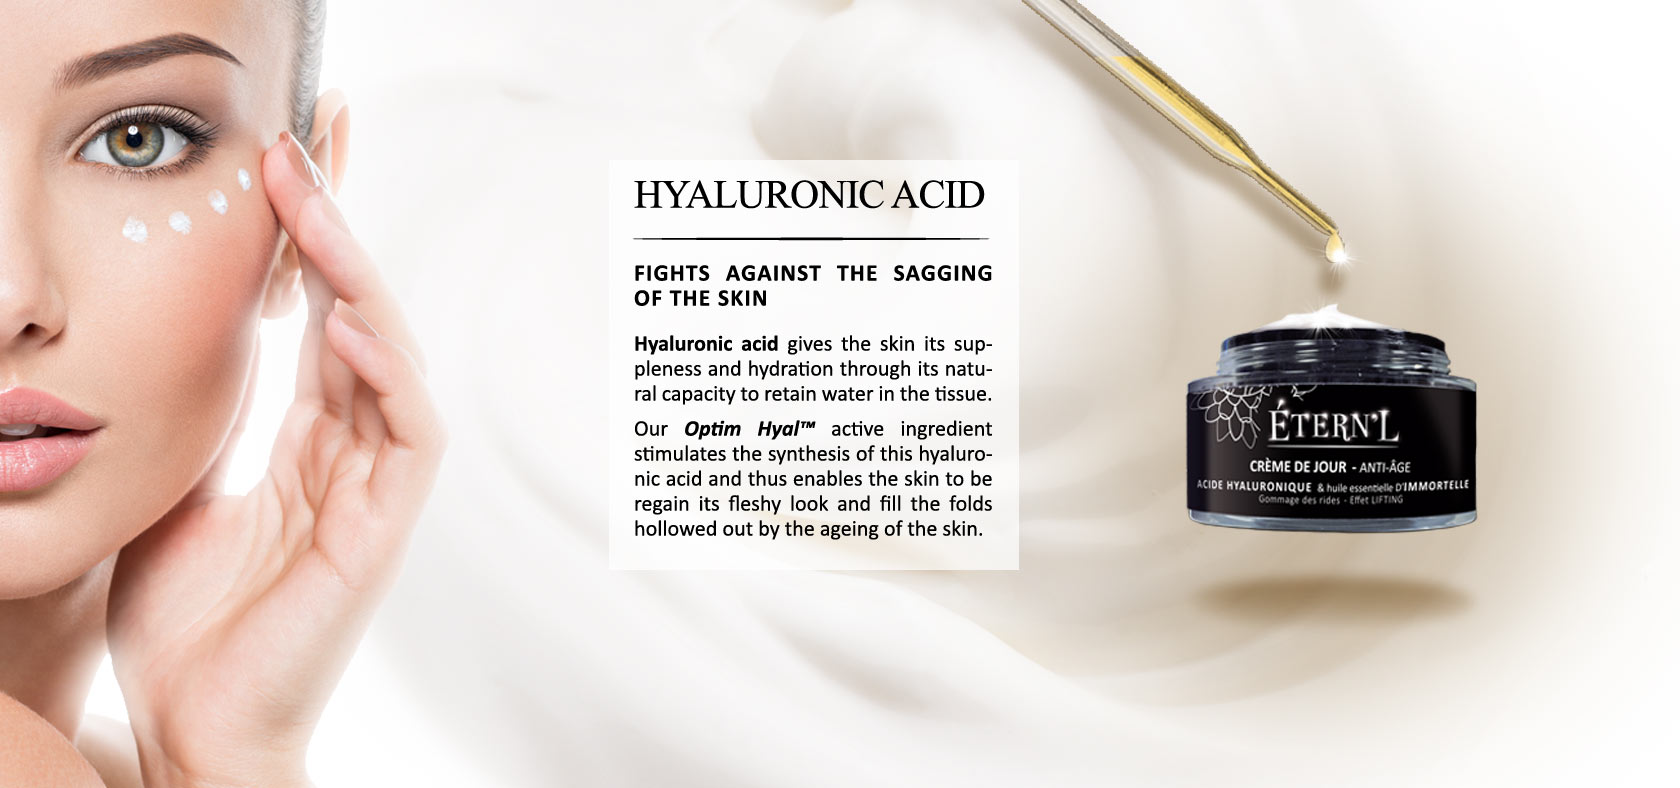 Hyaluronic acid gives the skin its suppleness and hydration through its natural capacity to retain water in the tissue. Our Optim Hyal© active ingredient stimulates the synthesis of this hyaluronic acid and thus enables the skin to be regain its fleshy lo